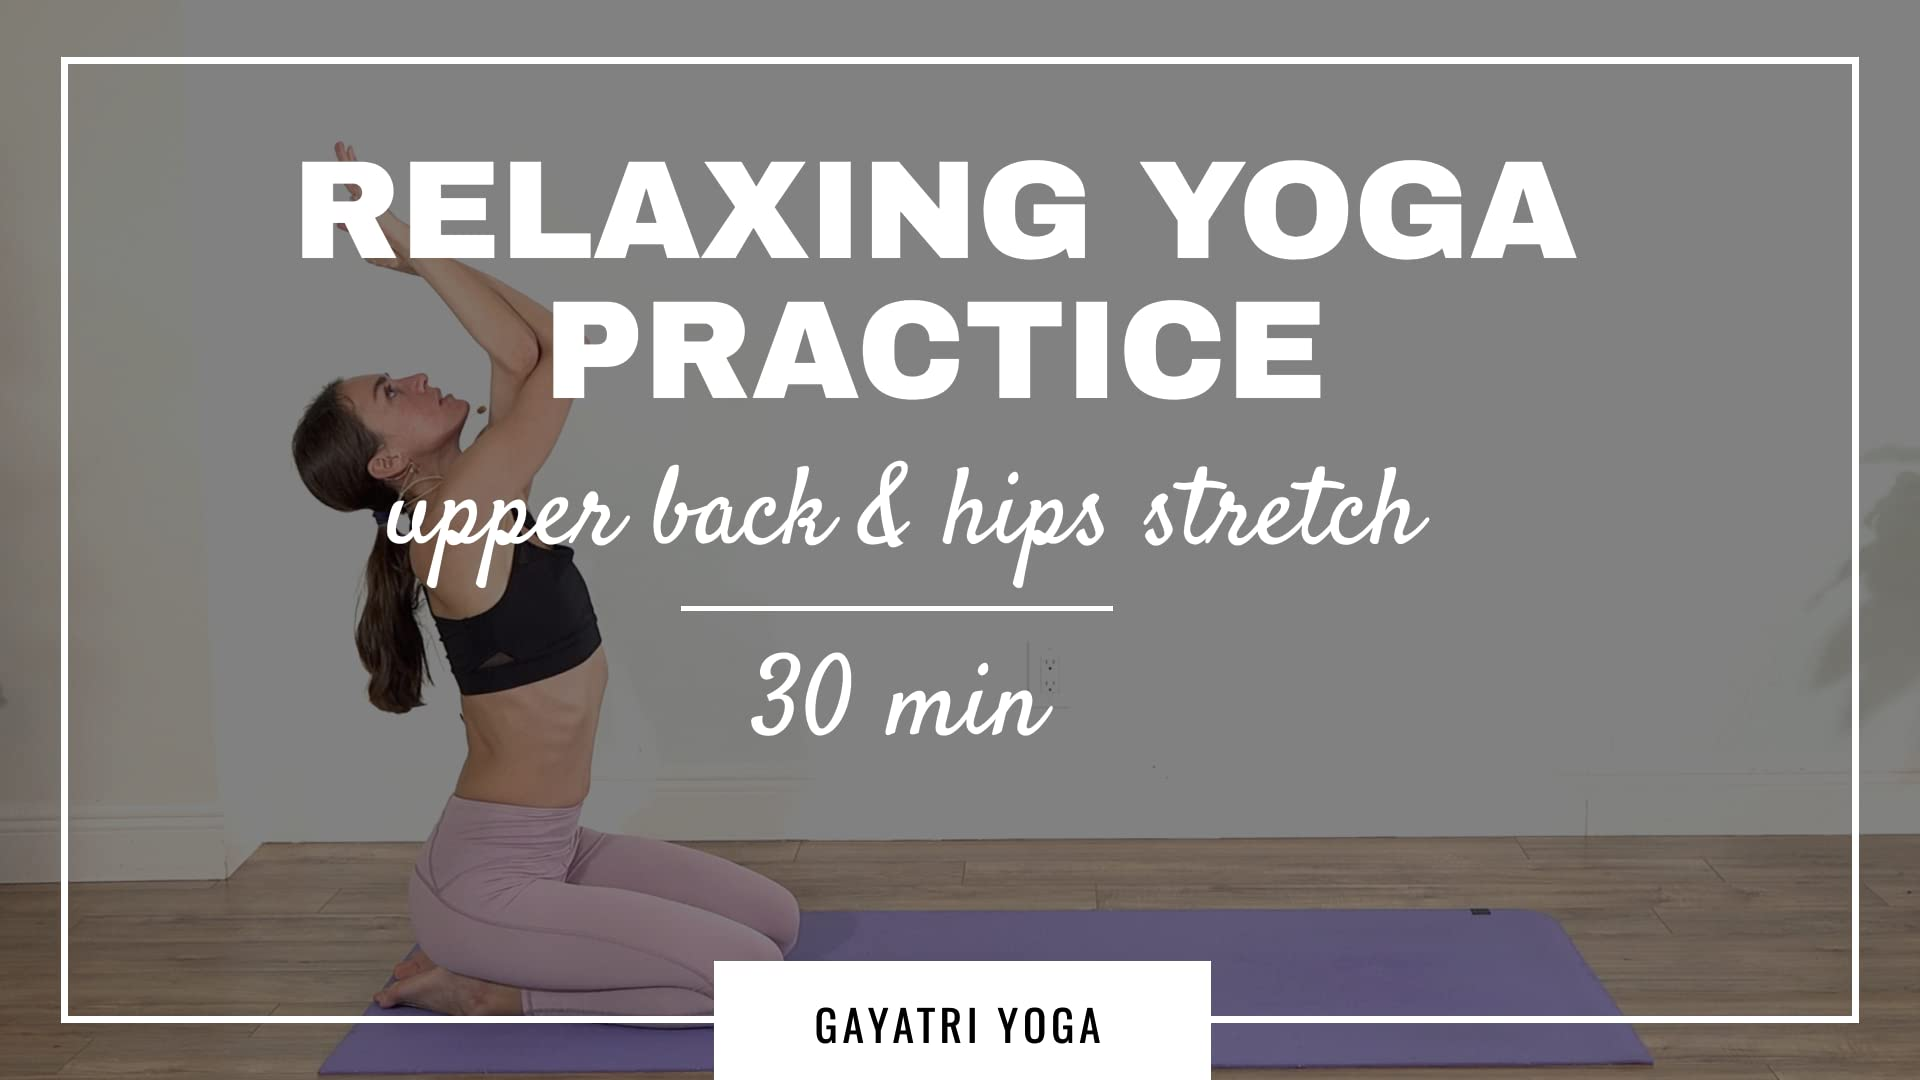 30 Min Relaxing Yoga Practice - Upper Back & Hips Stretch | Gayatri Yoga